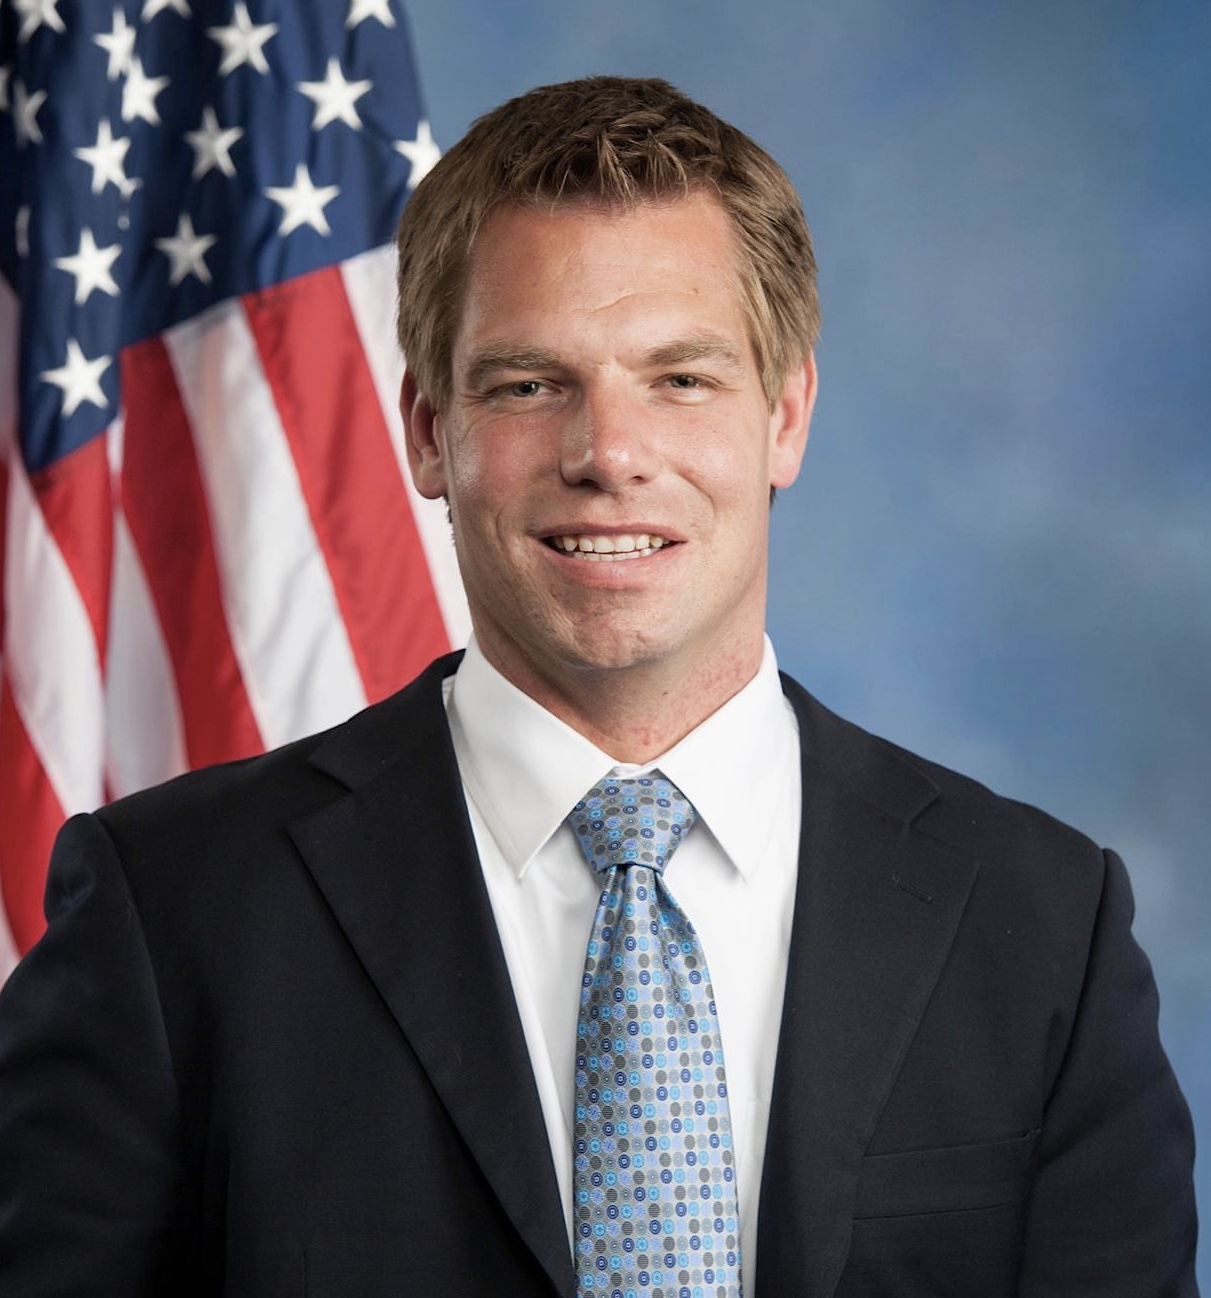 Congressman Eric Swalwell August 25, 2016